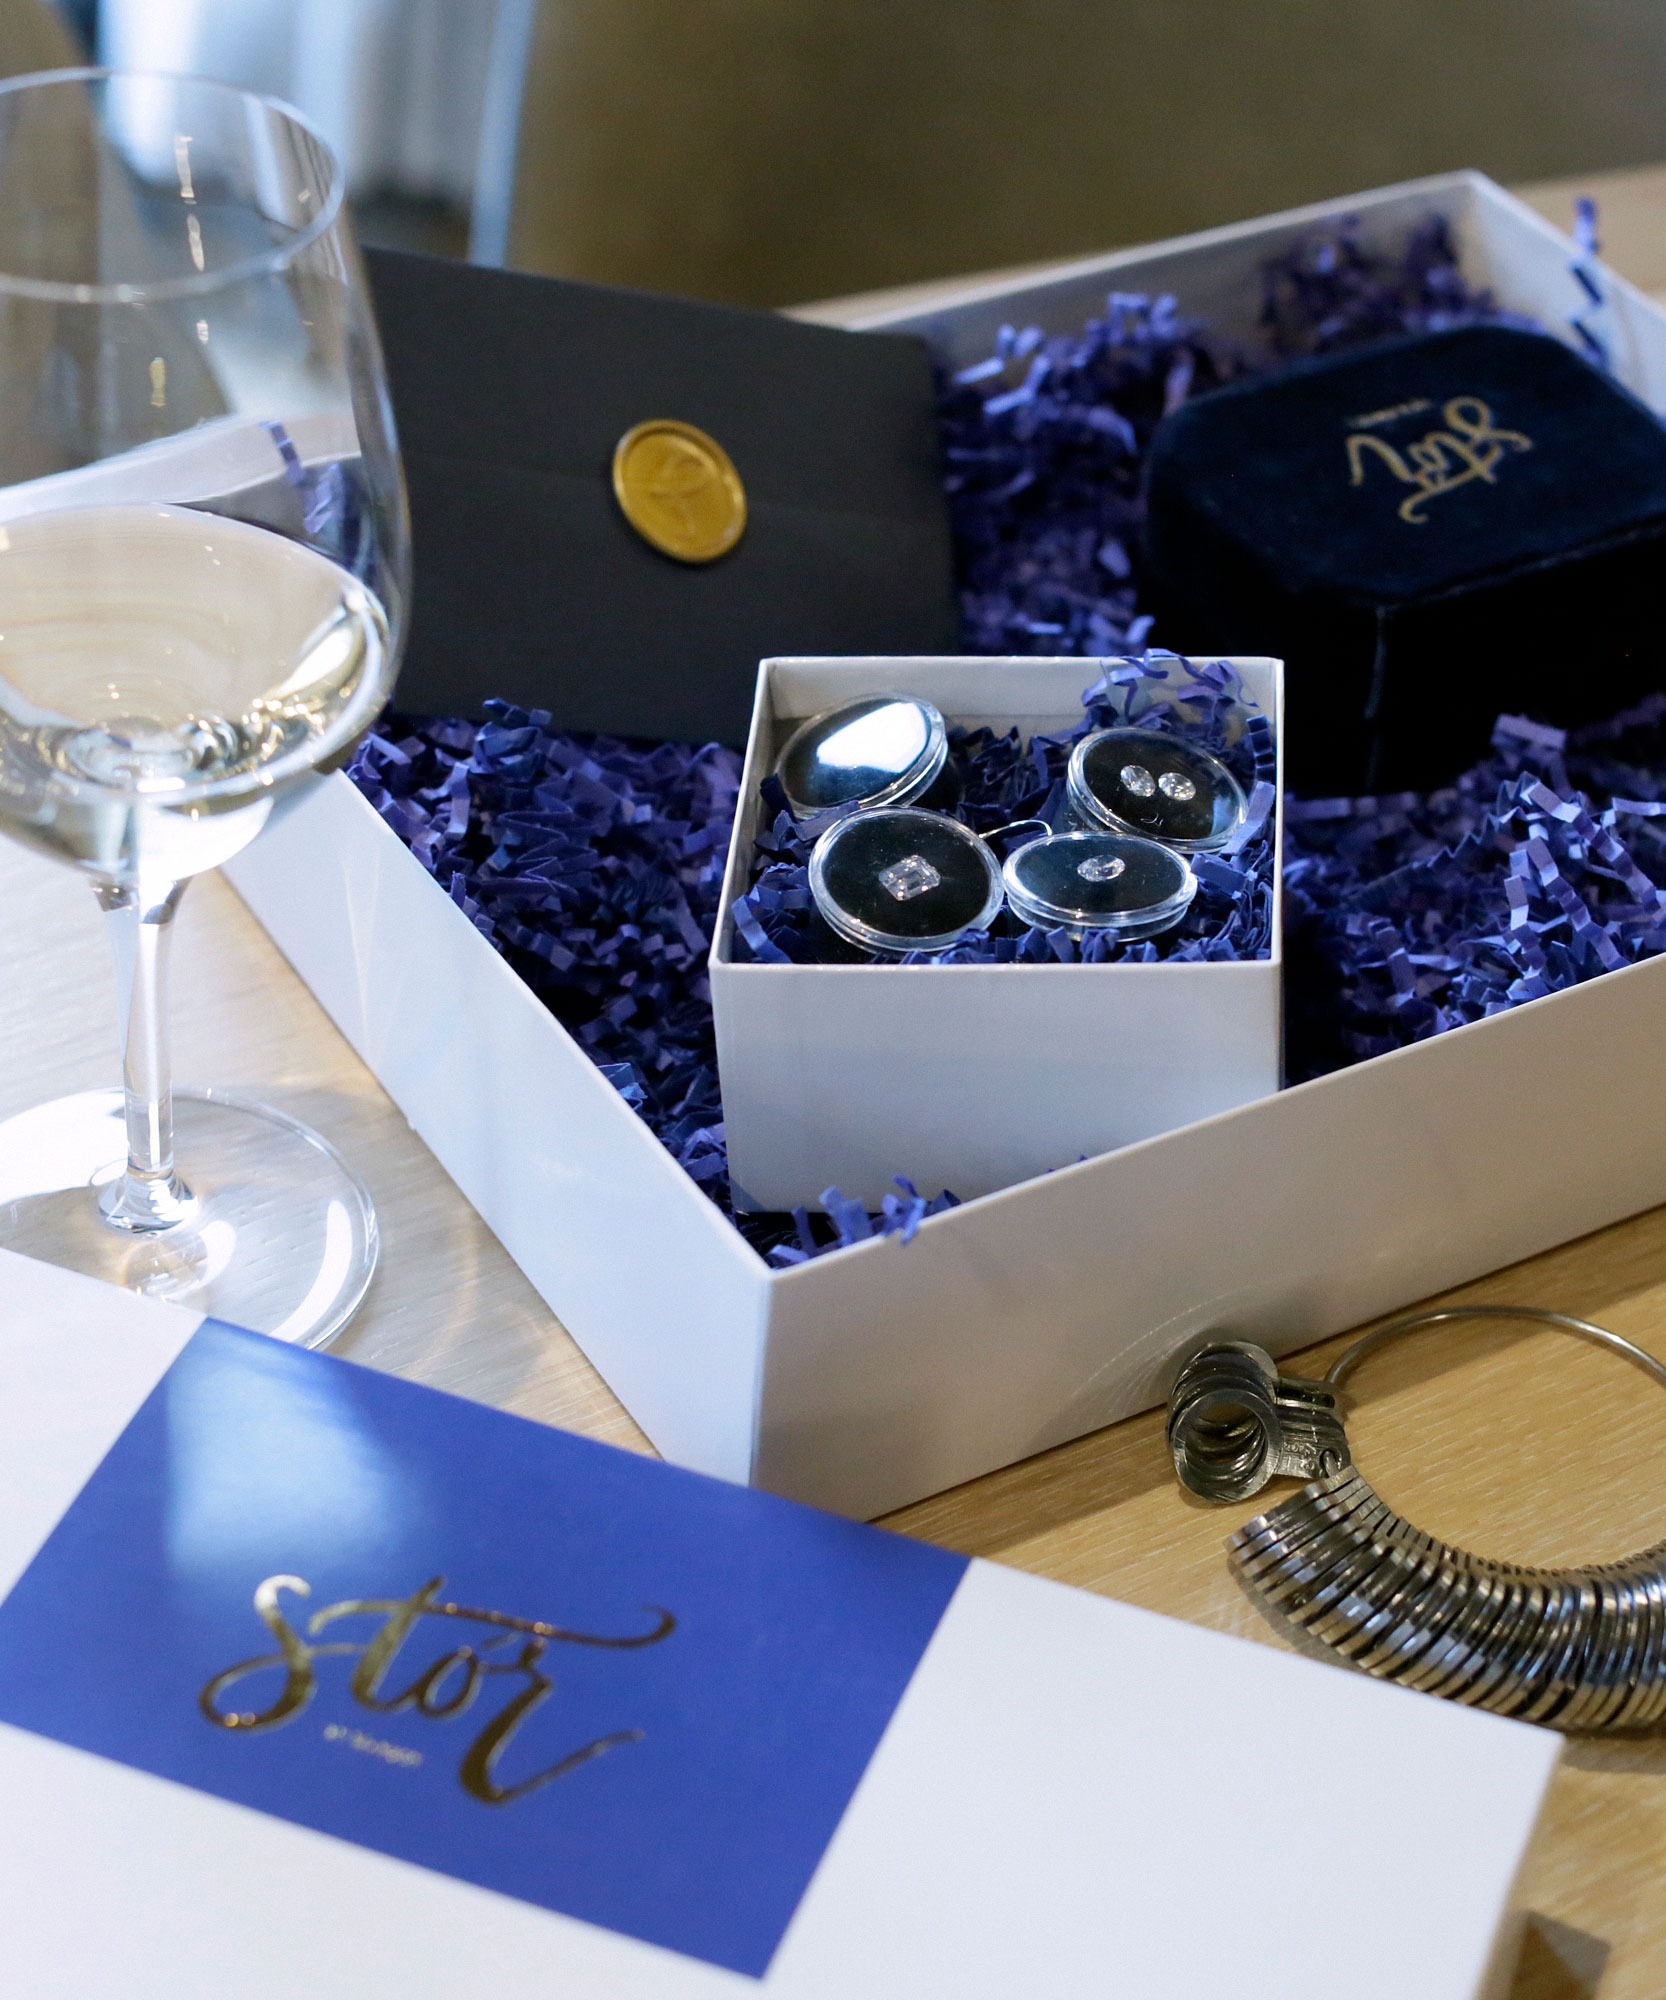 Virtual Ring Experience Box components